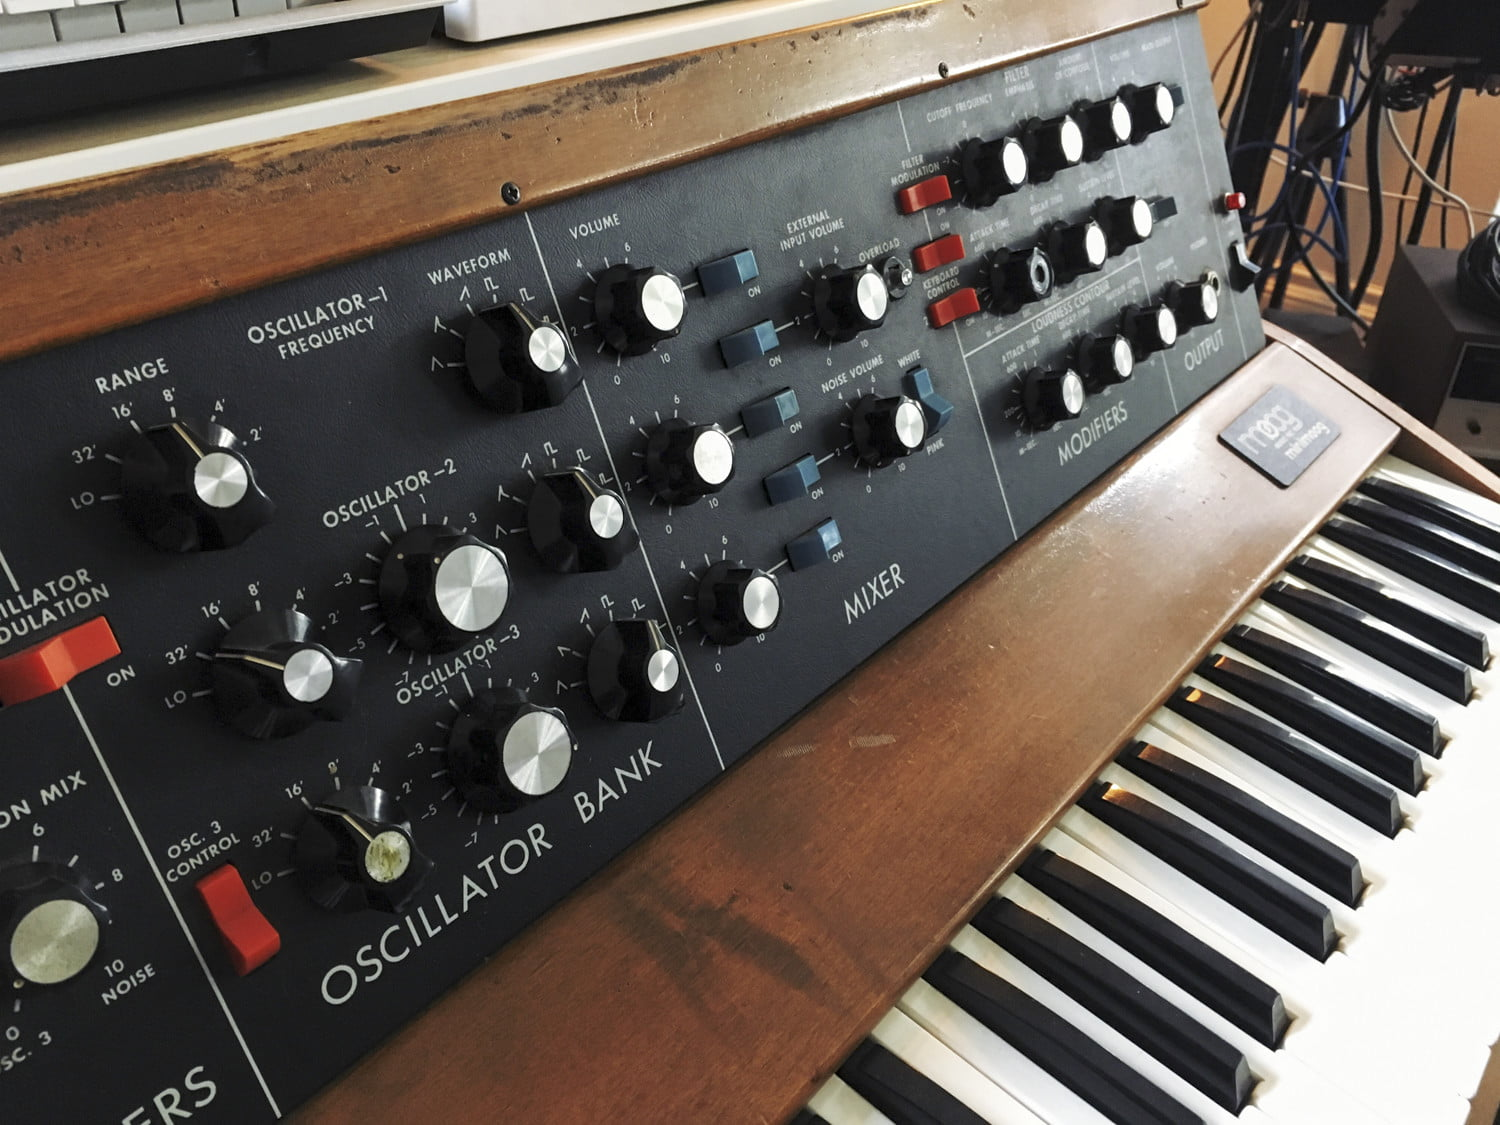 Audiophile Battle Tapes studio knobs for music production